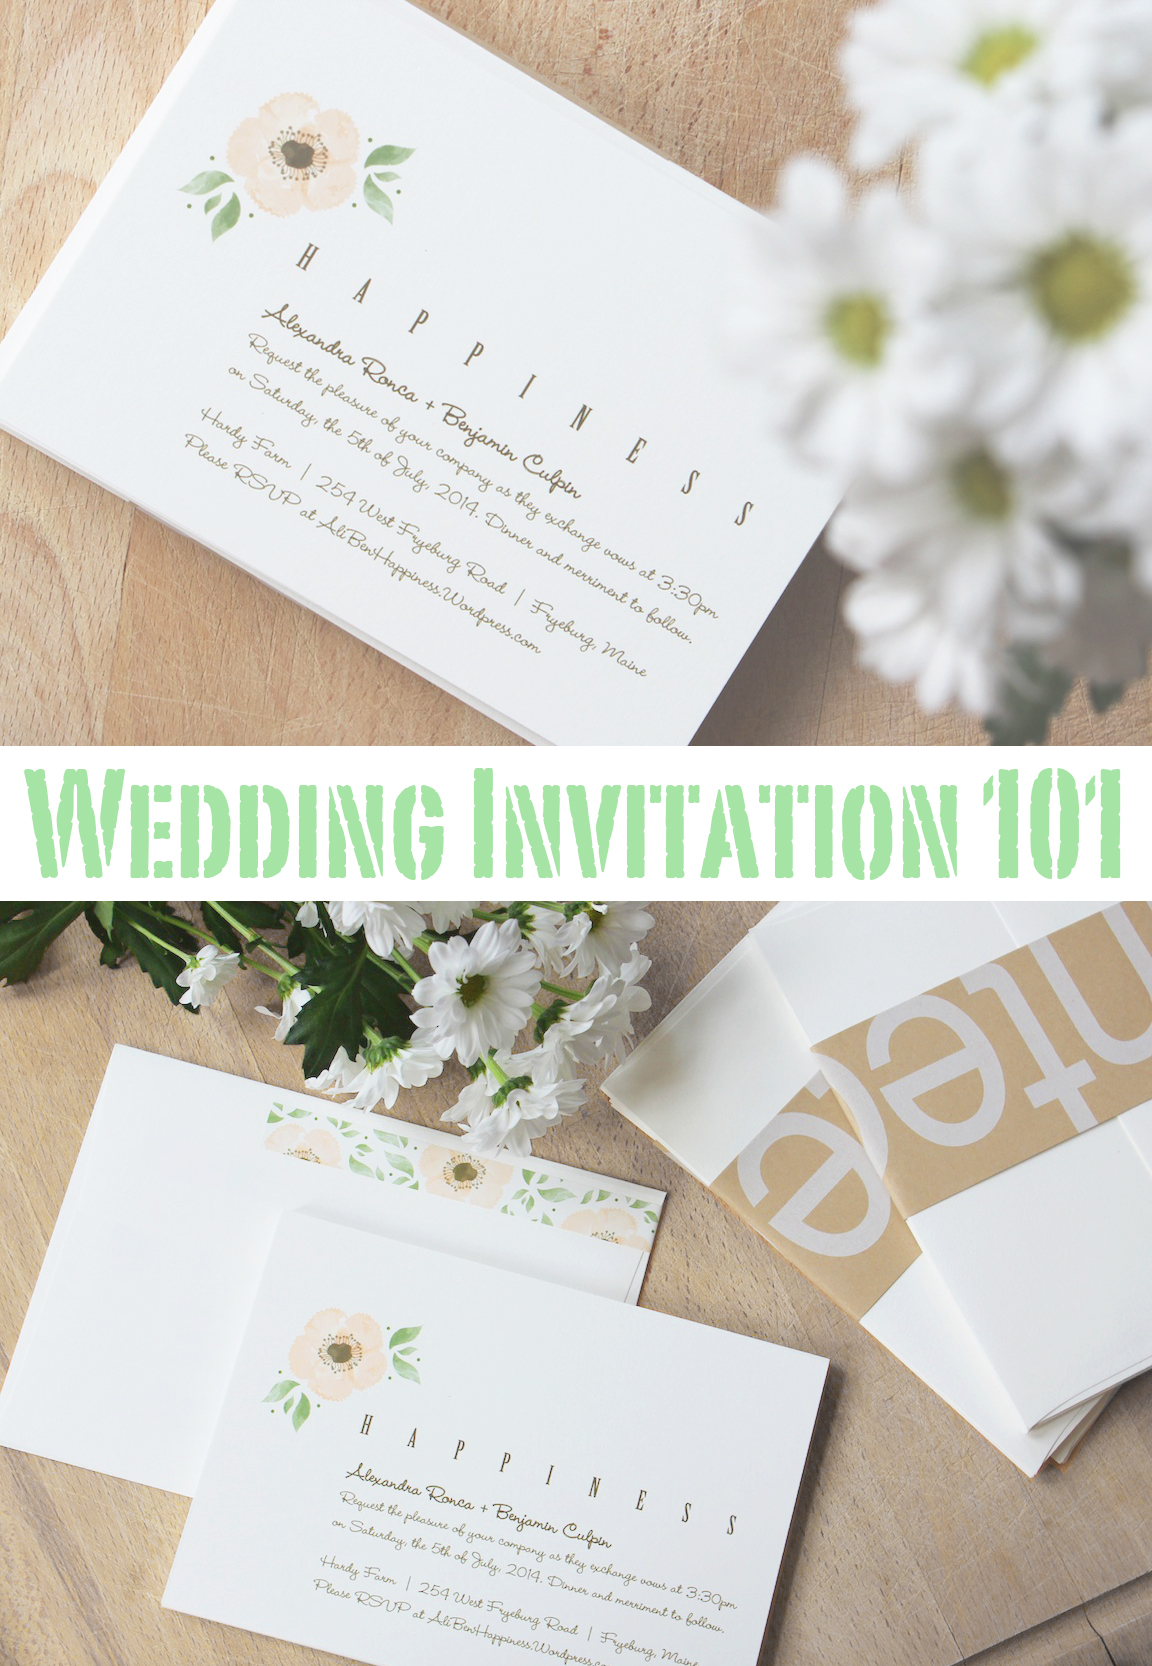 Wedding Invitation 101